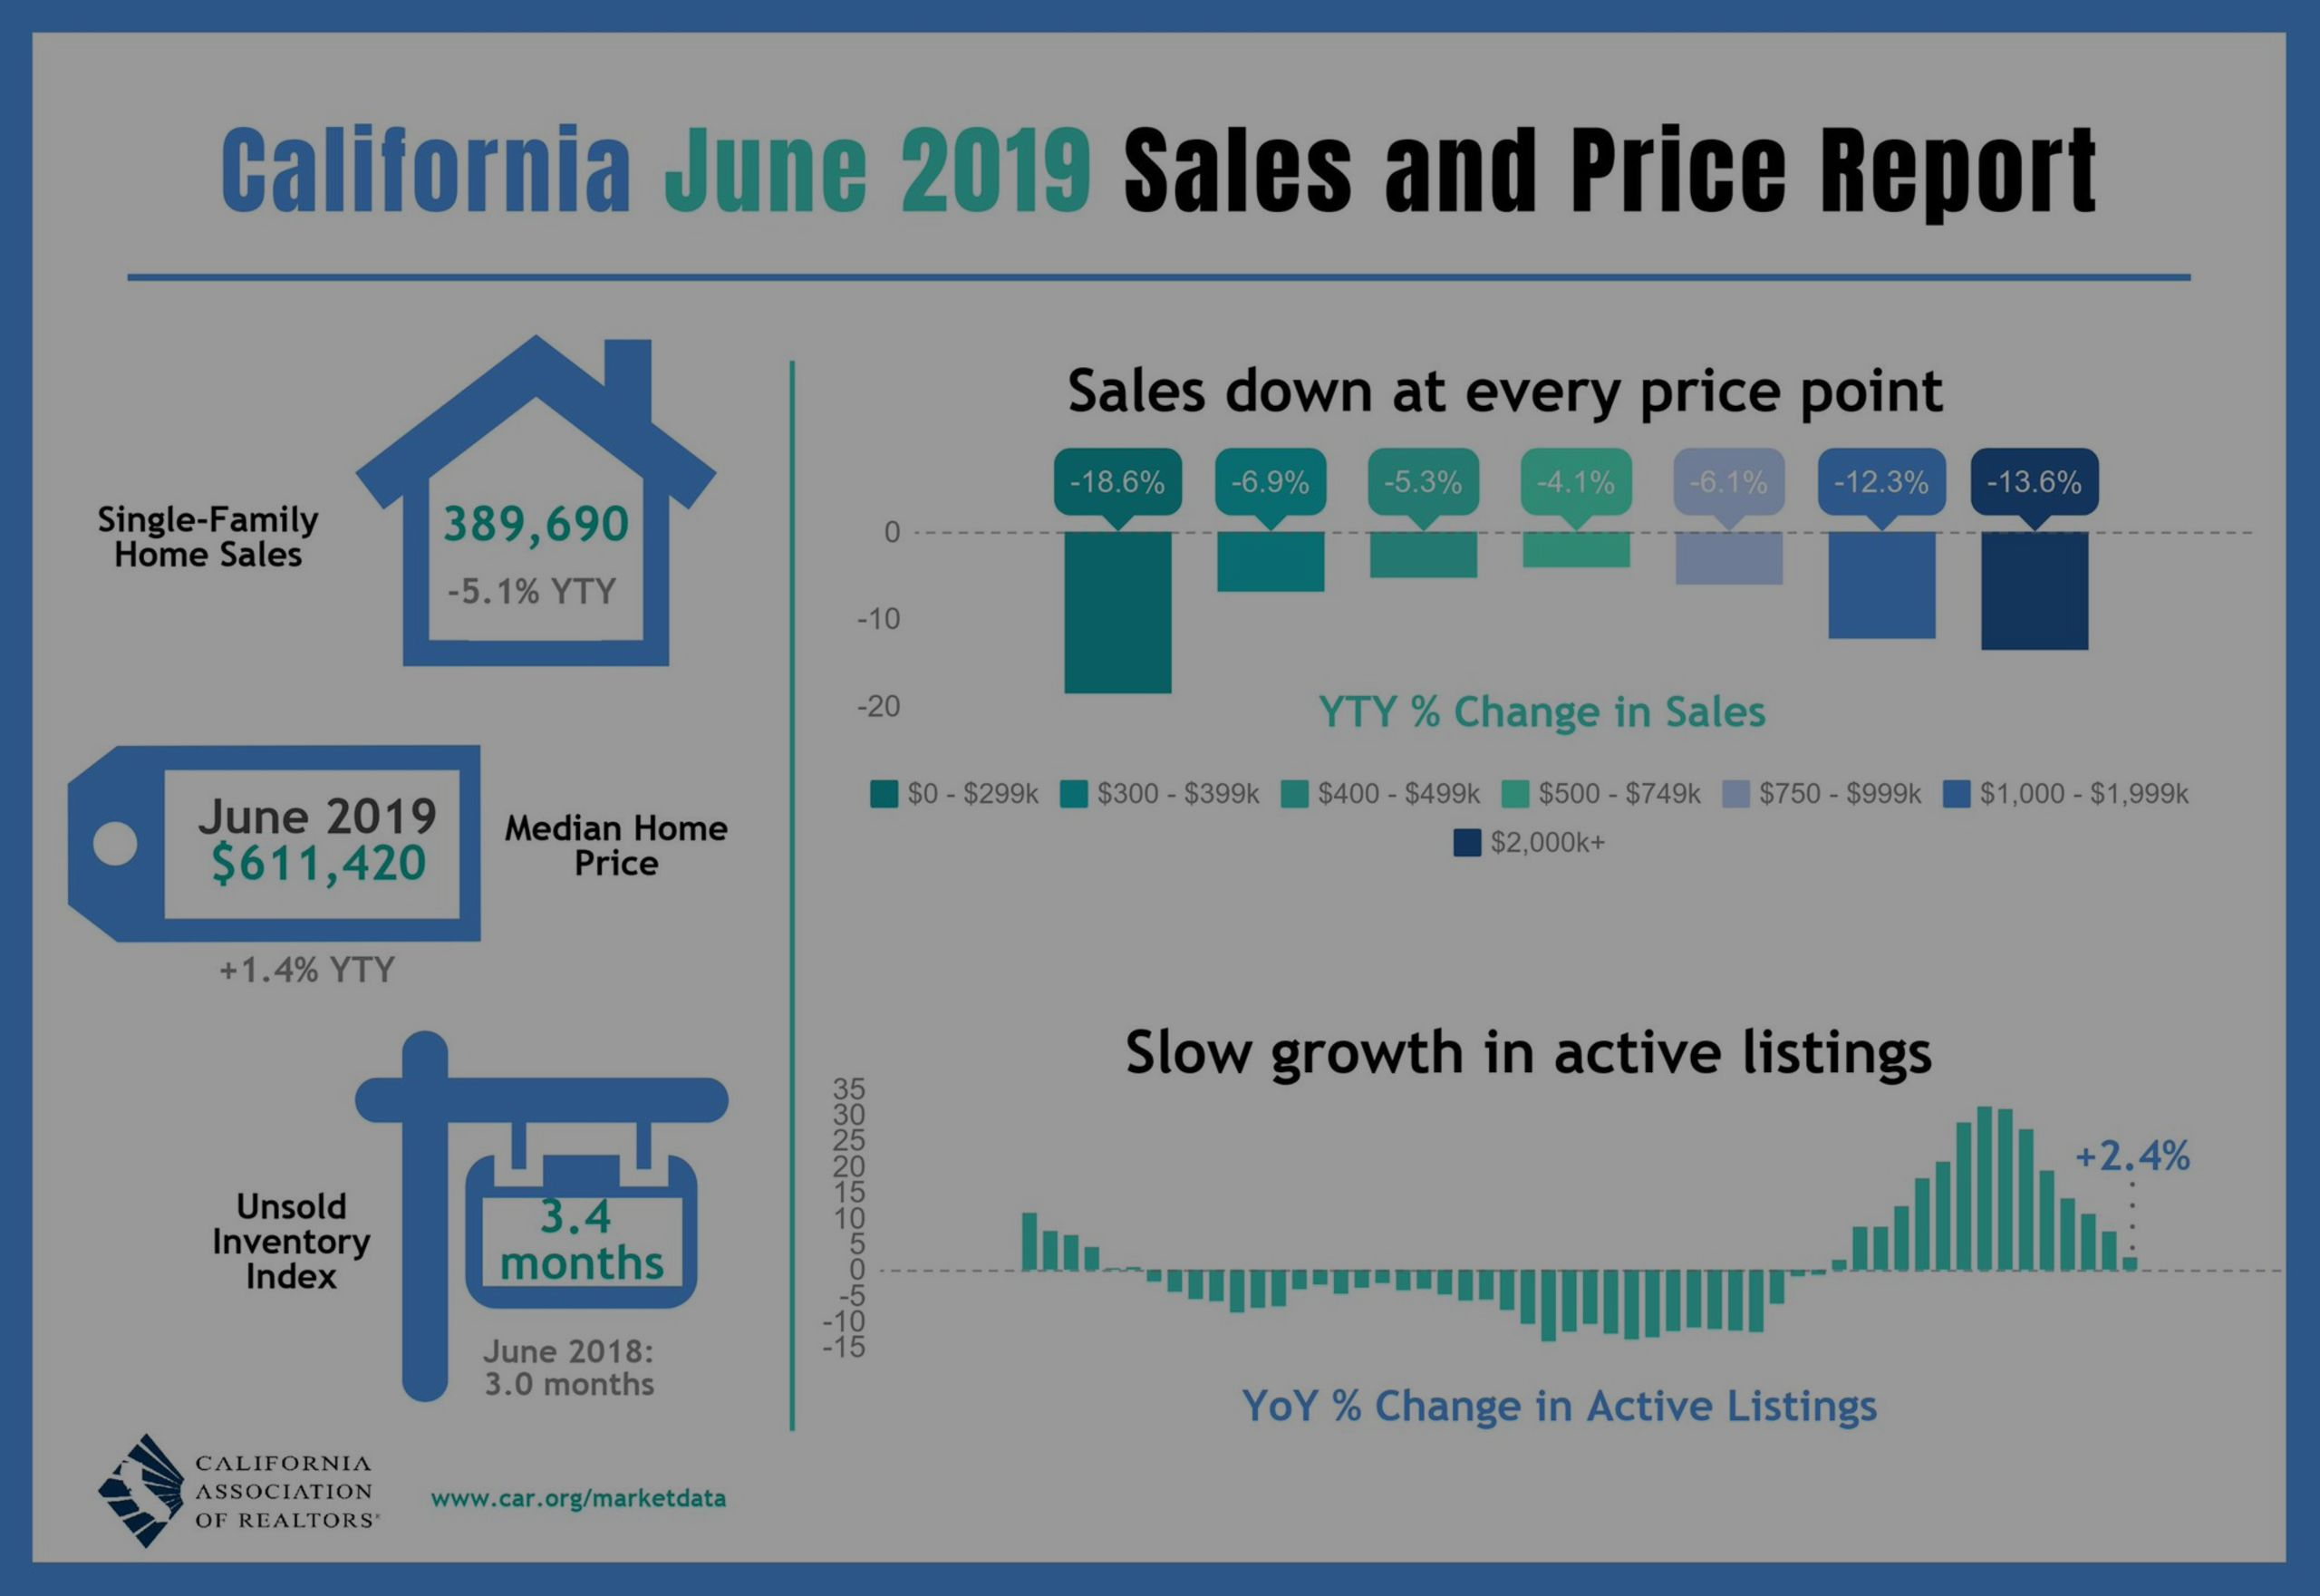 California June 2019 Sales and Price Report